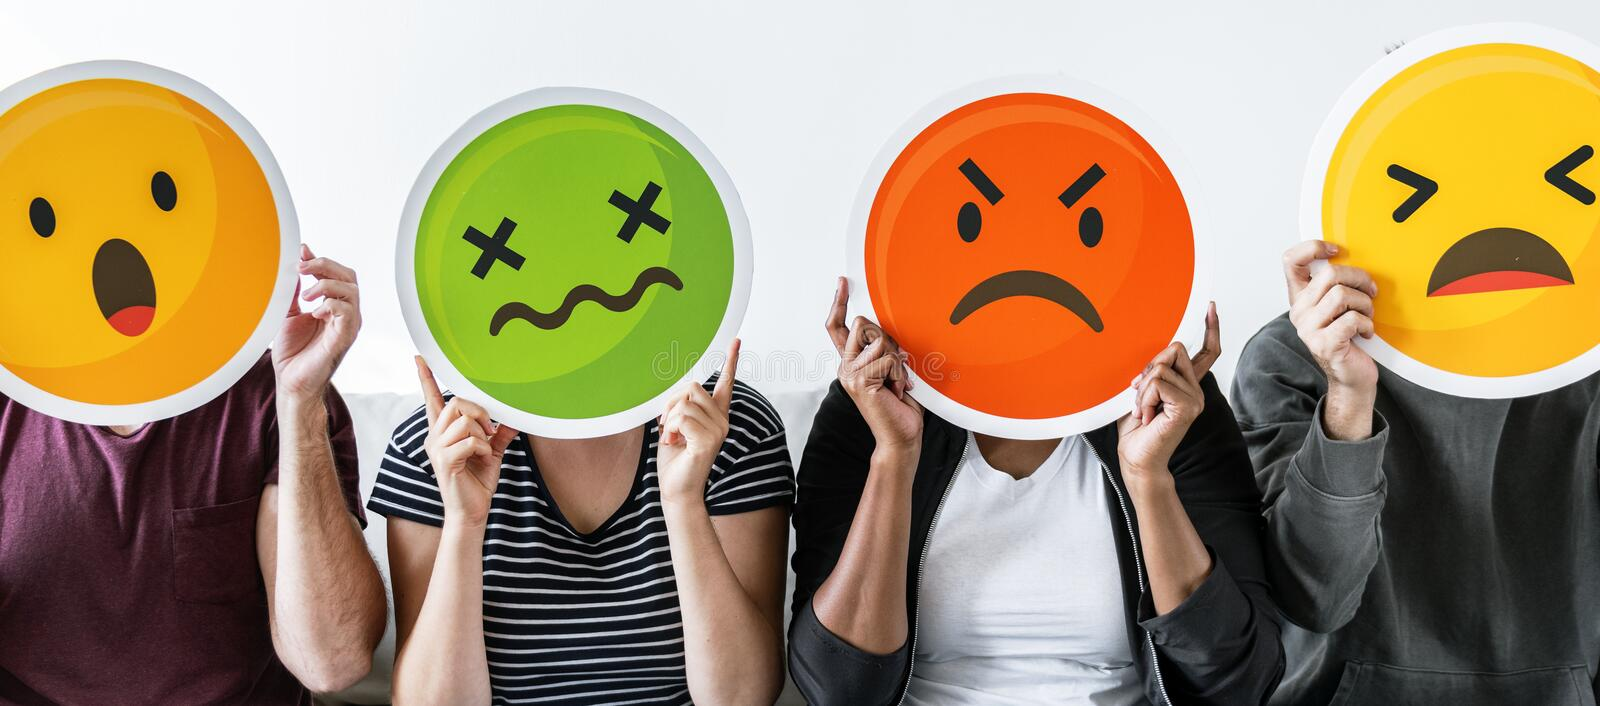 Diverse people holding various emoticons royalty free stock photo